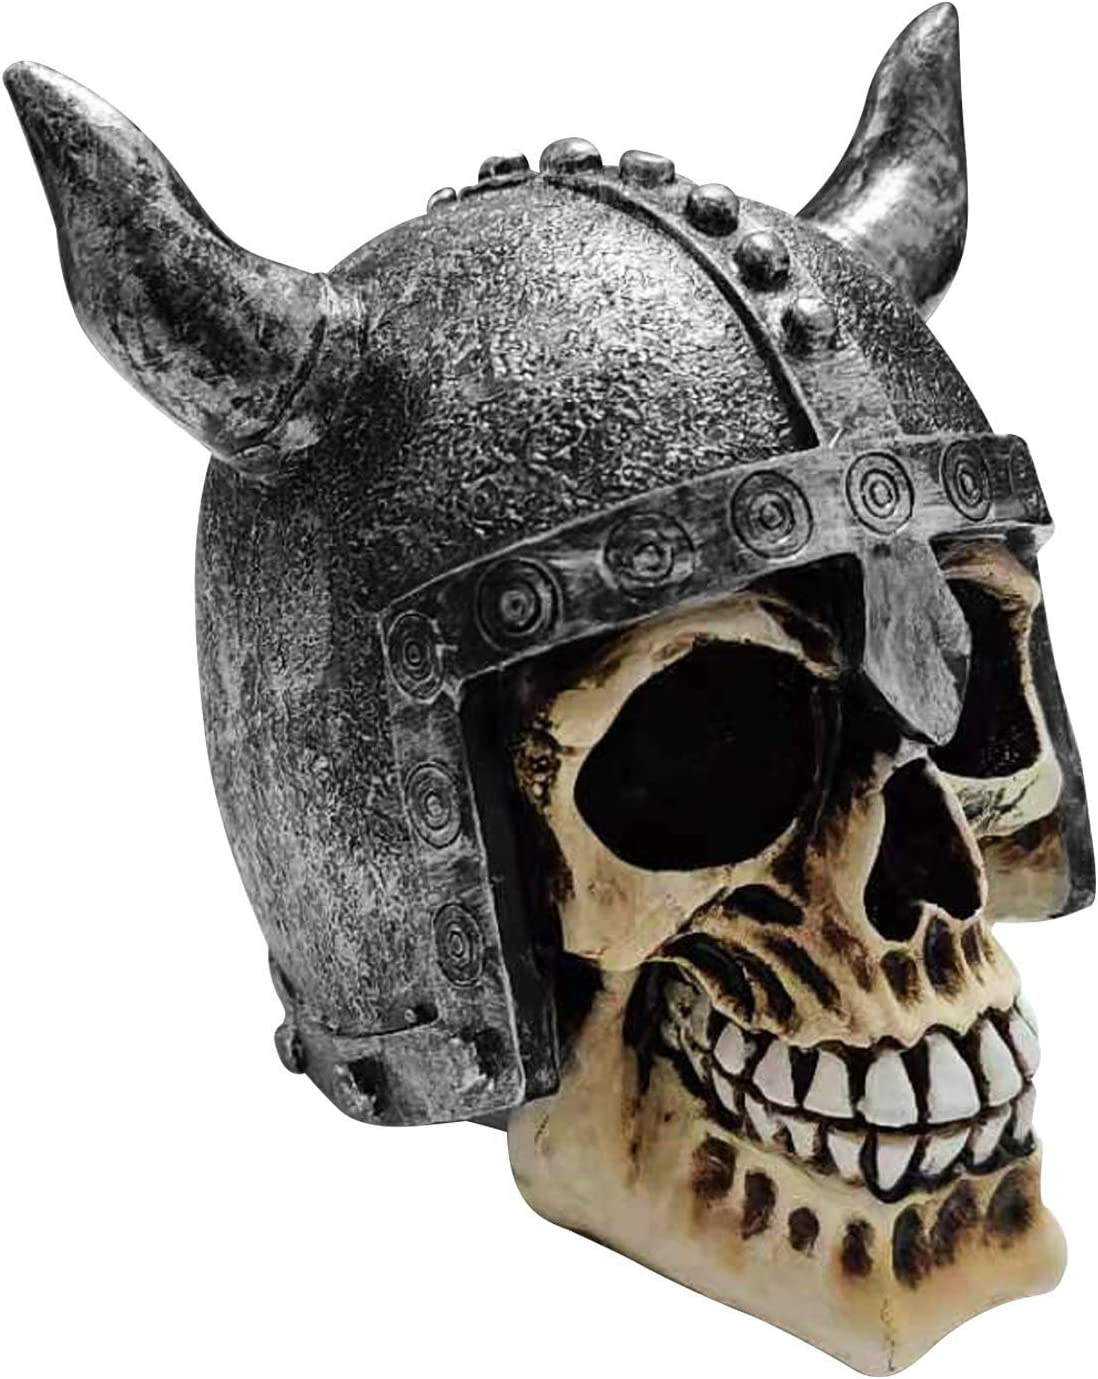 Human Skull Statue Home Décor, Resin Craft Skull Statue with Viking Helmet Skull Figurines Sculpture Home Decoration Accessories